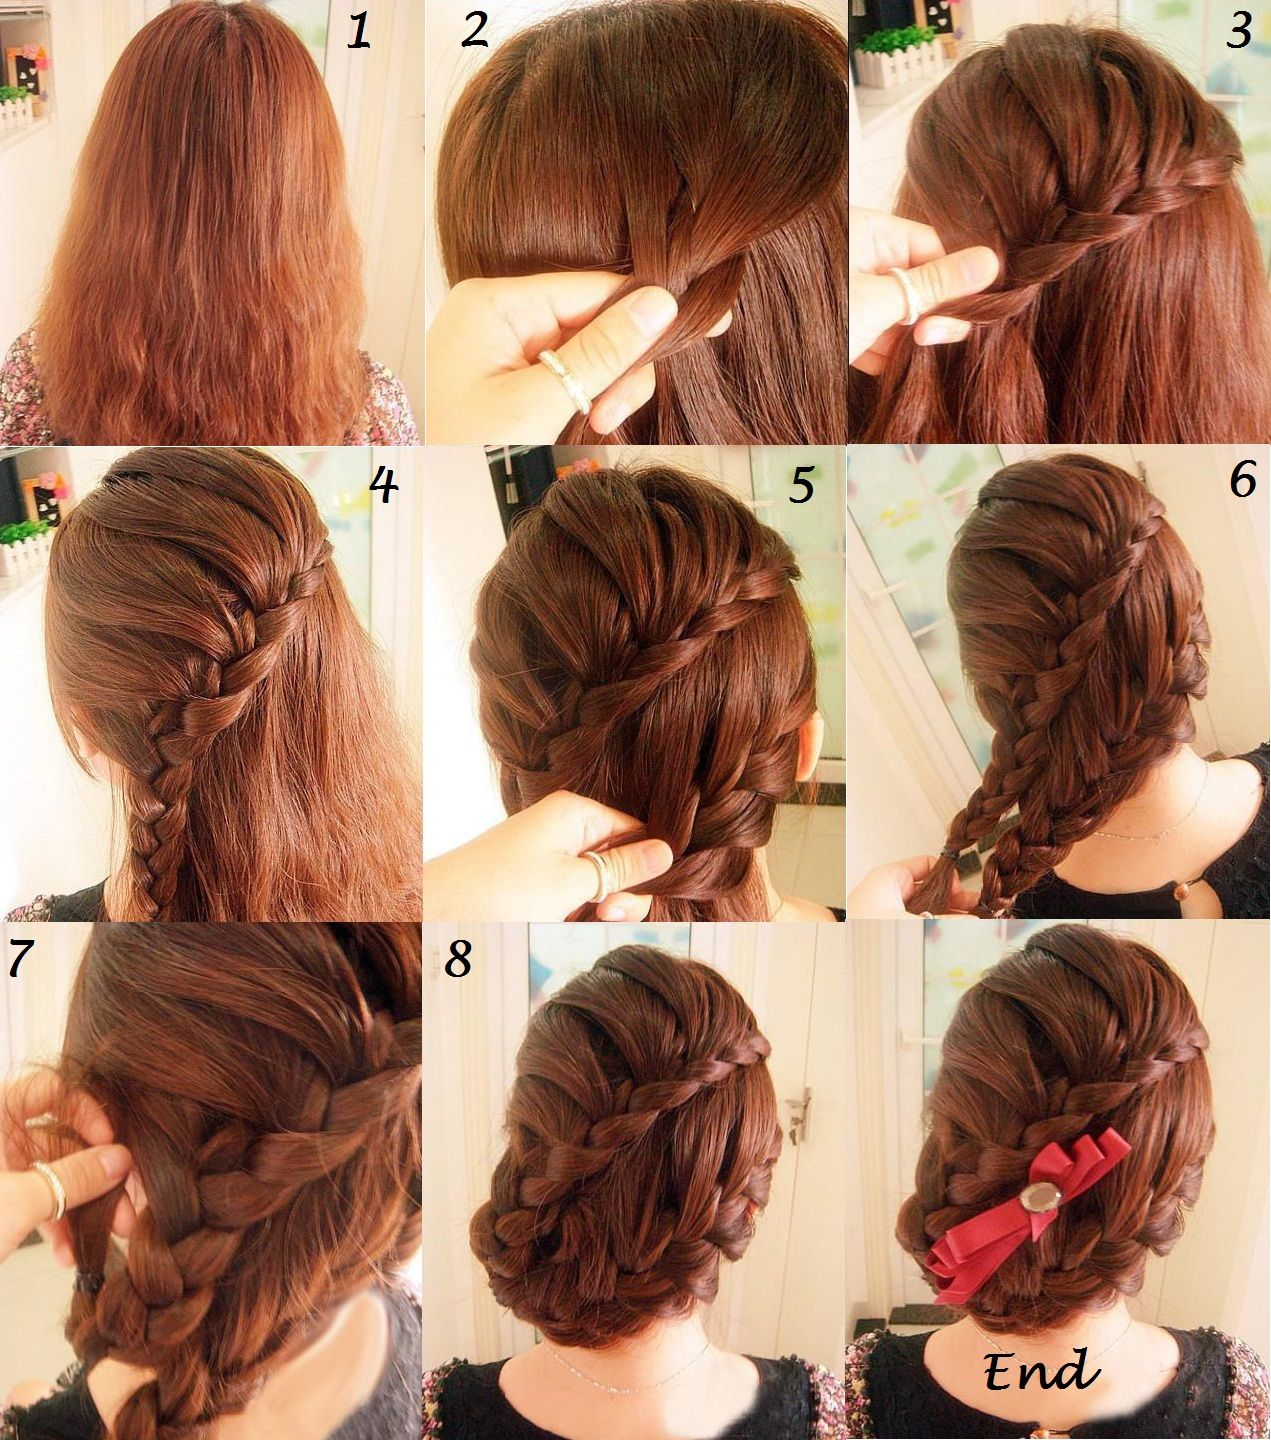 Wedding Hairstyle Step By Step: 9 Easy Steps To Get Super Cute Braided Hair Style (With